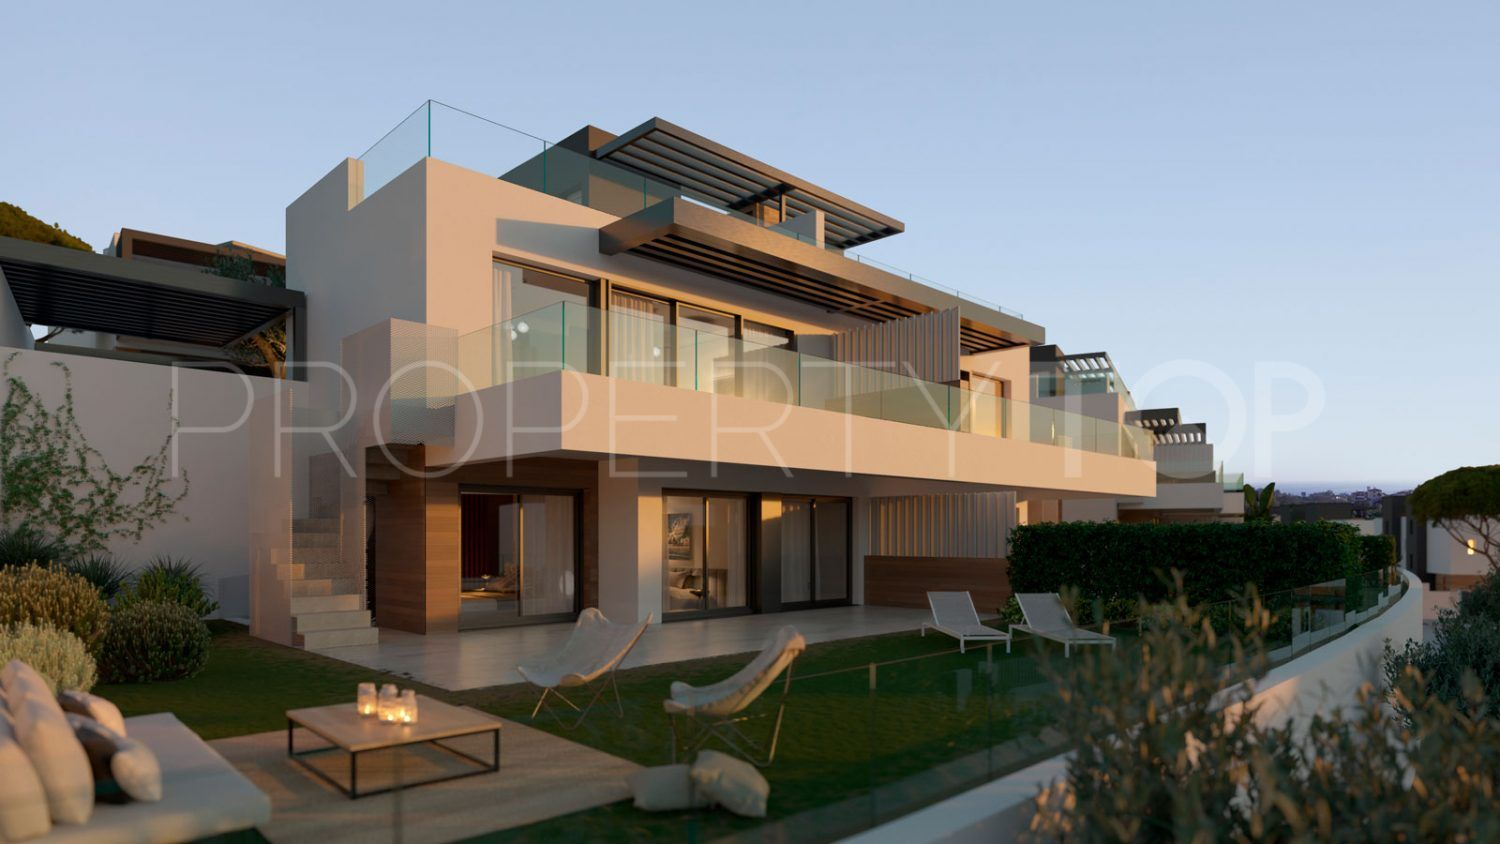 For Sale Semi Detached Villa In Estepona Berkshire Hathaway Homeservices Marbella